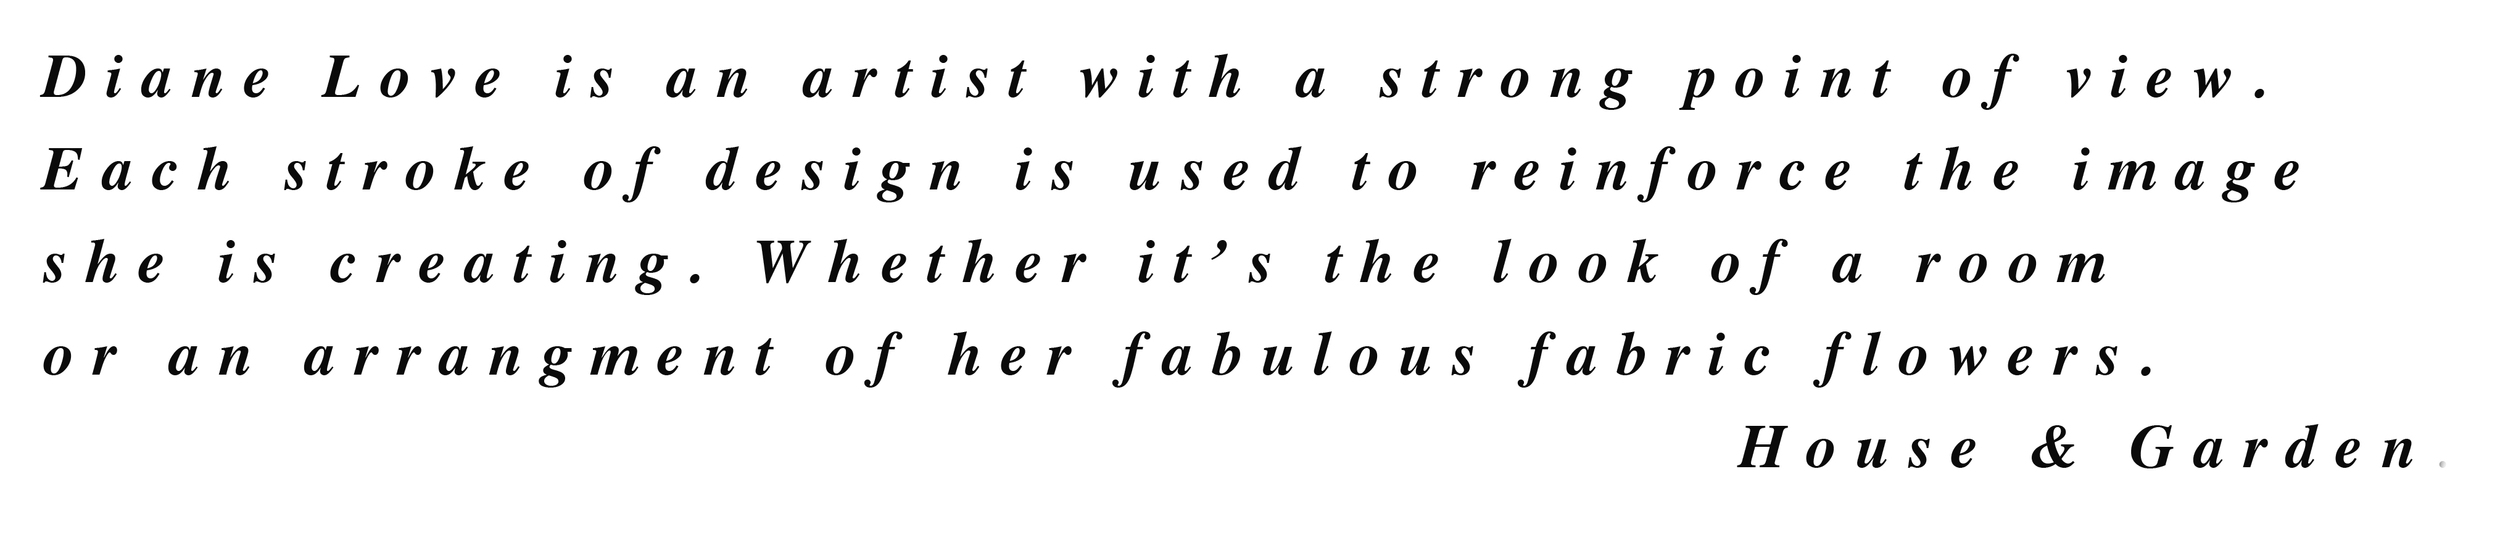 QUOTE ON DESIGN PAGE.jpg